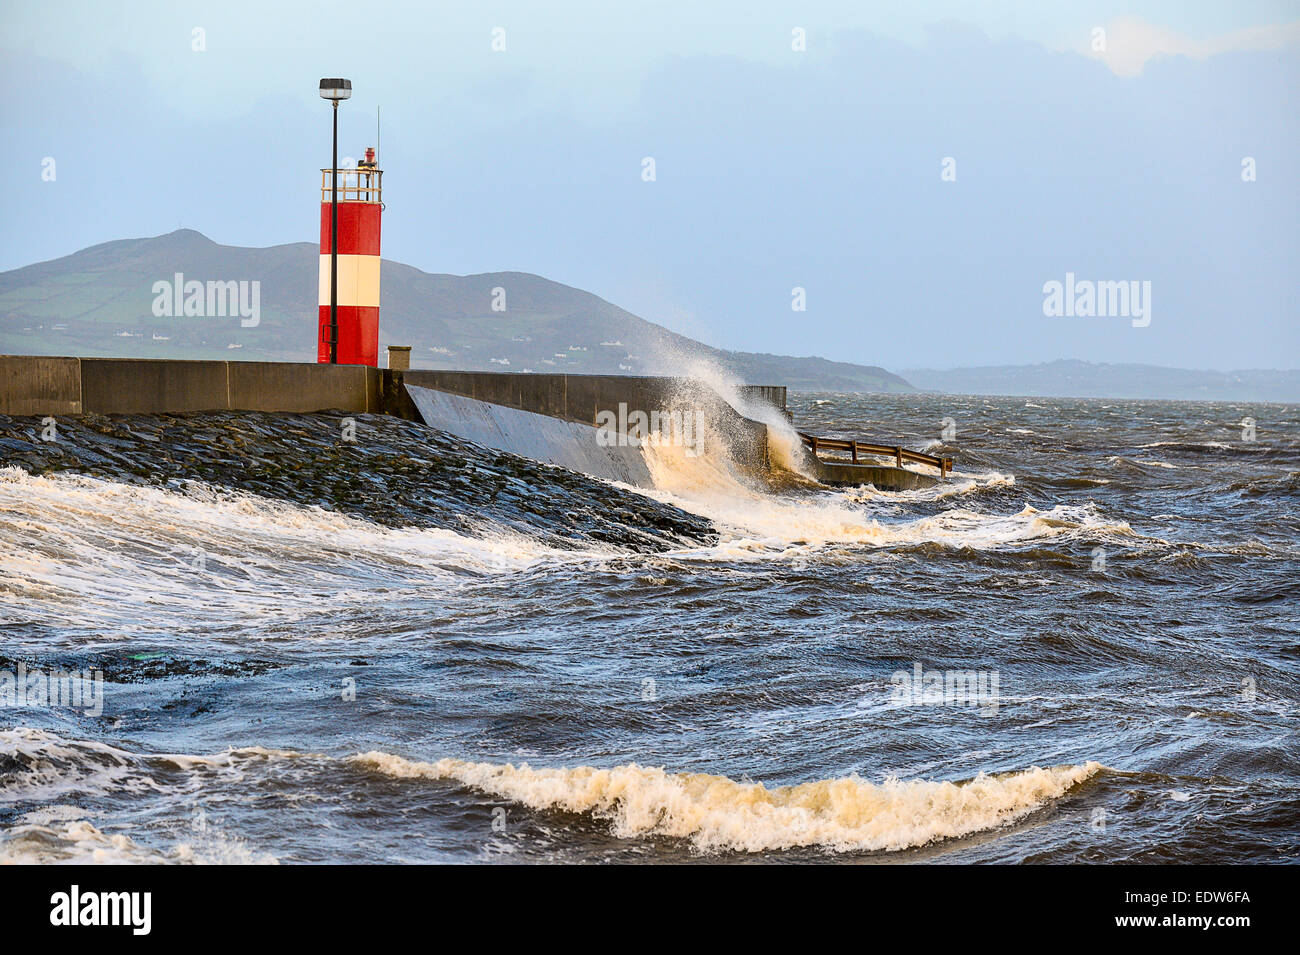 Buncrana Pier, County Donegal, Ireland. 10th January, 2015. Huge waves batter Donegal coast, Ireland. - 10th January - Stock Image